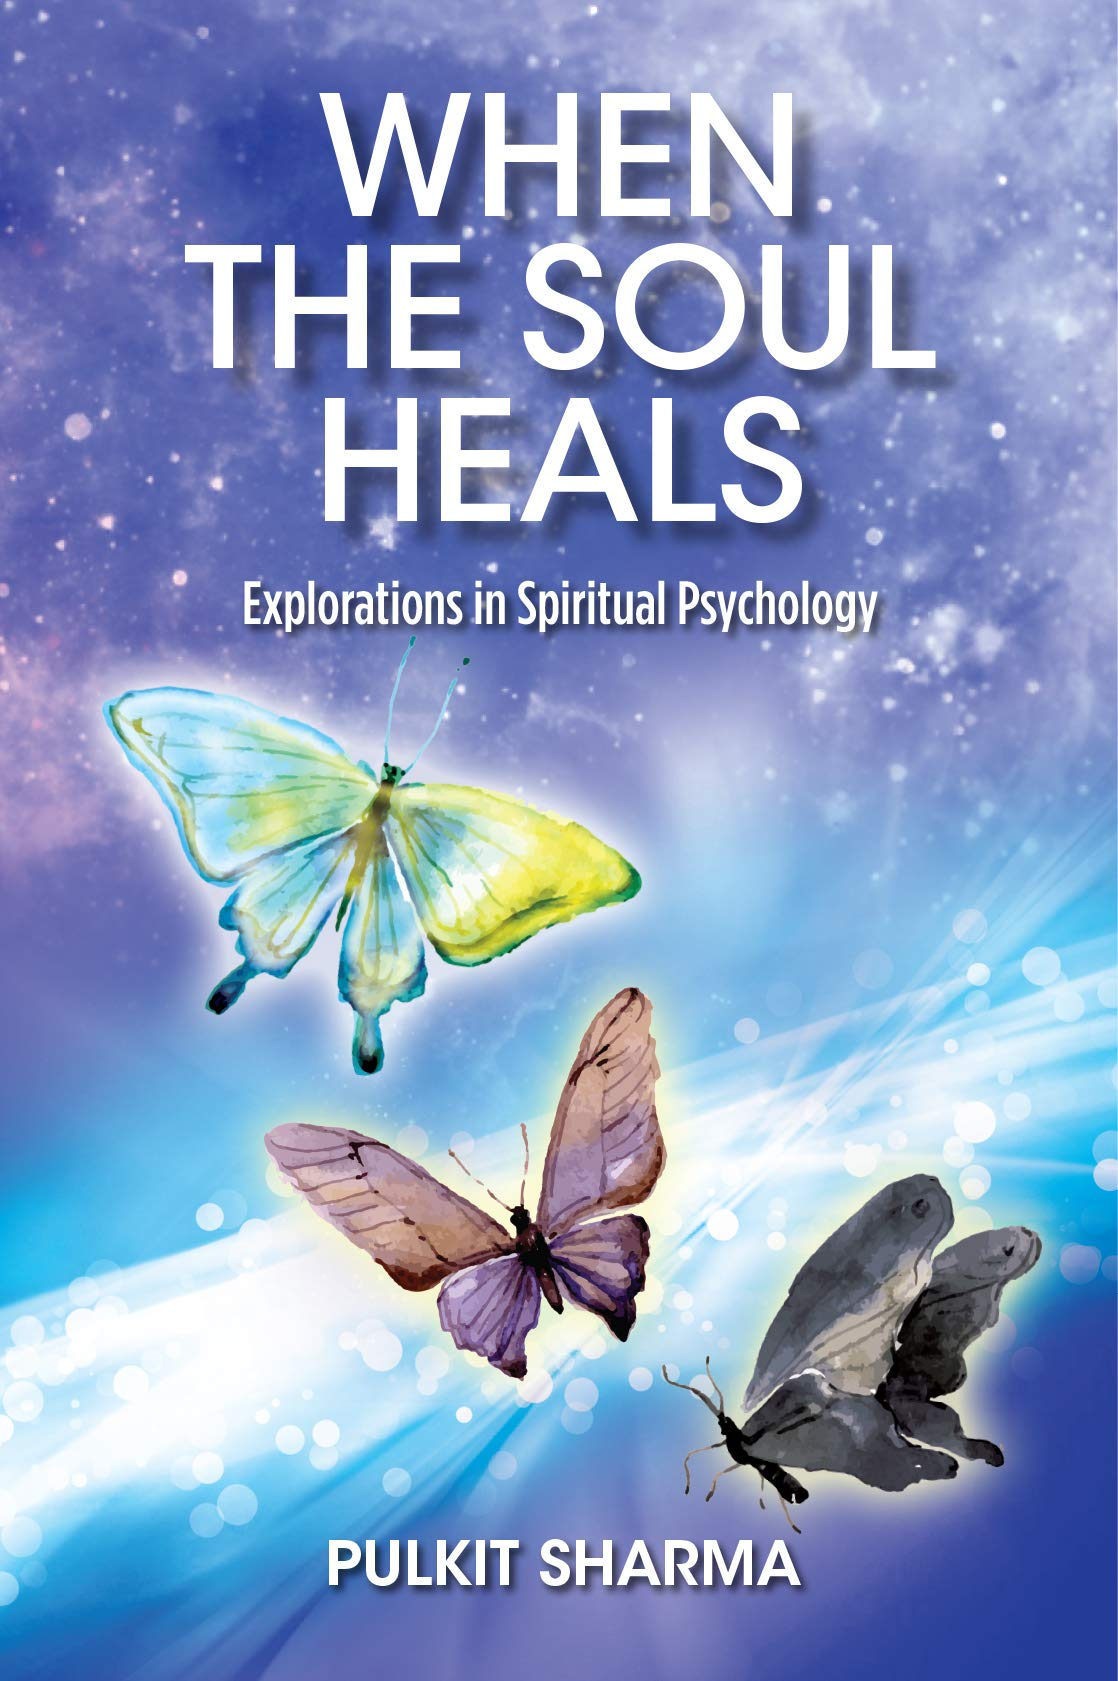 Book Review - When the Soul Heals by Pulkit Sharma